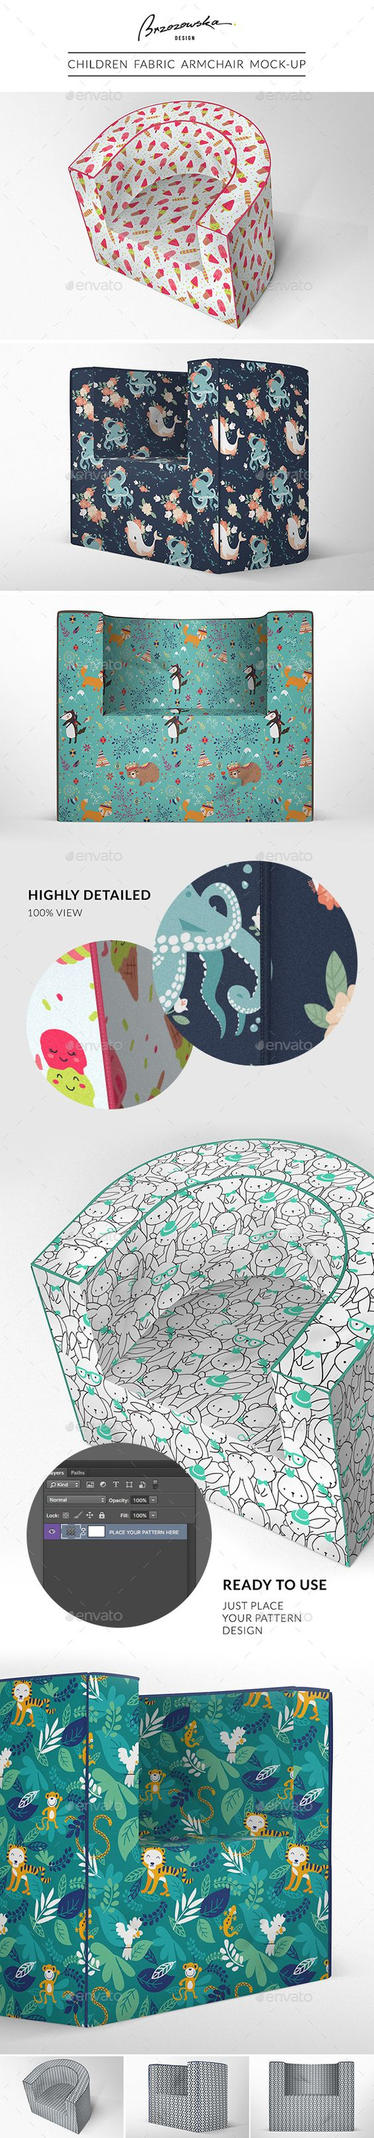 Children Fabric Armchair Mock-up - Product Mock-Up by theanthnonyrich